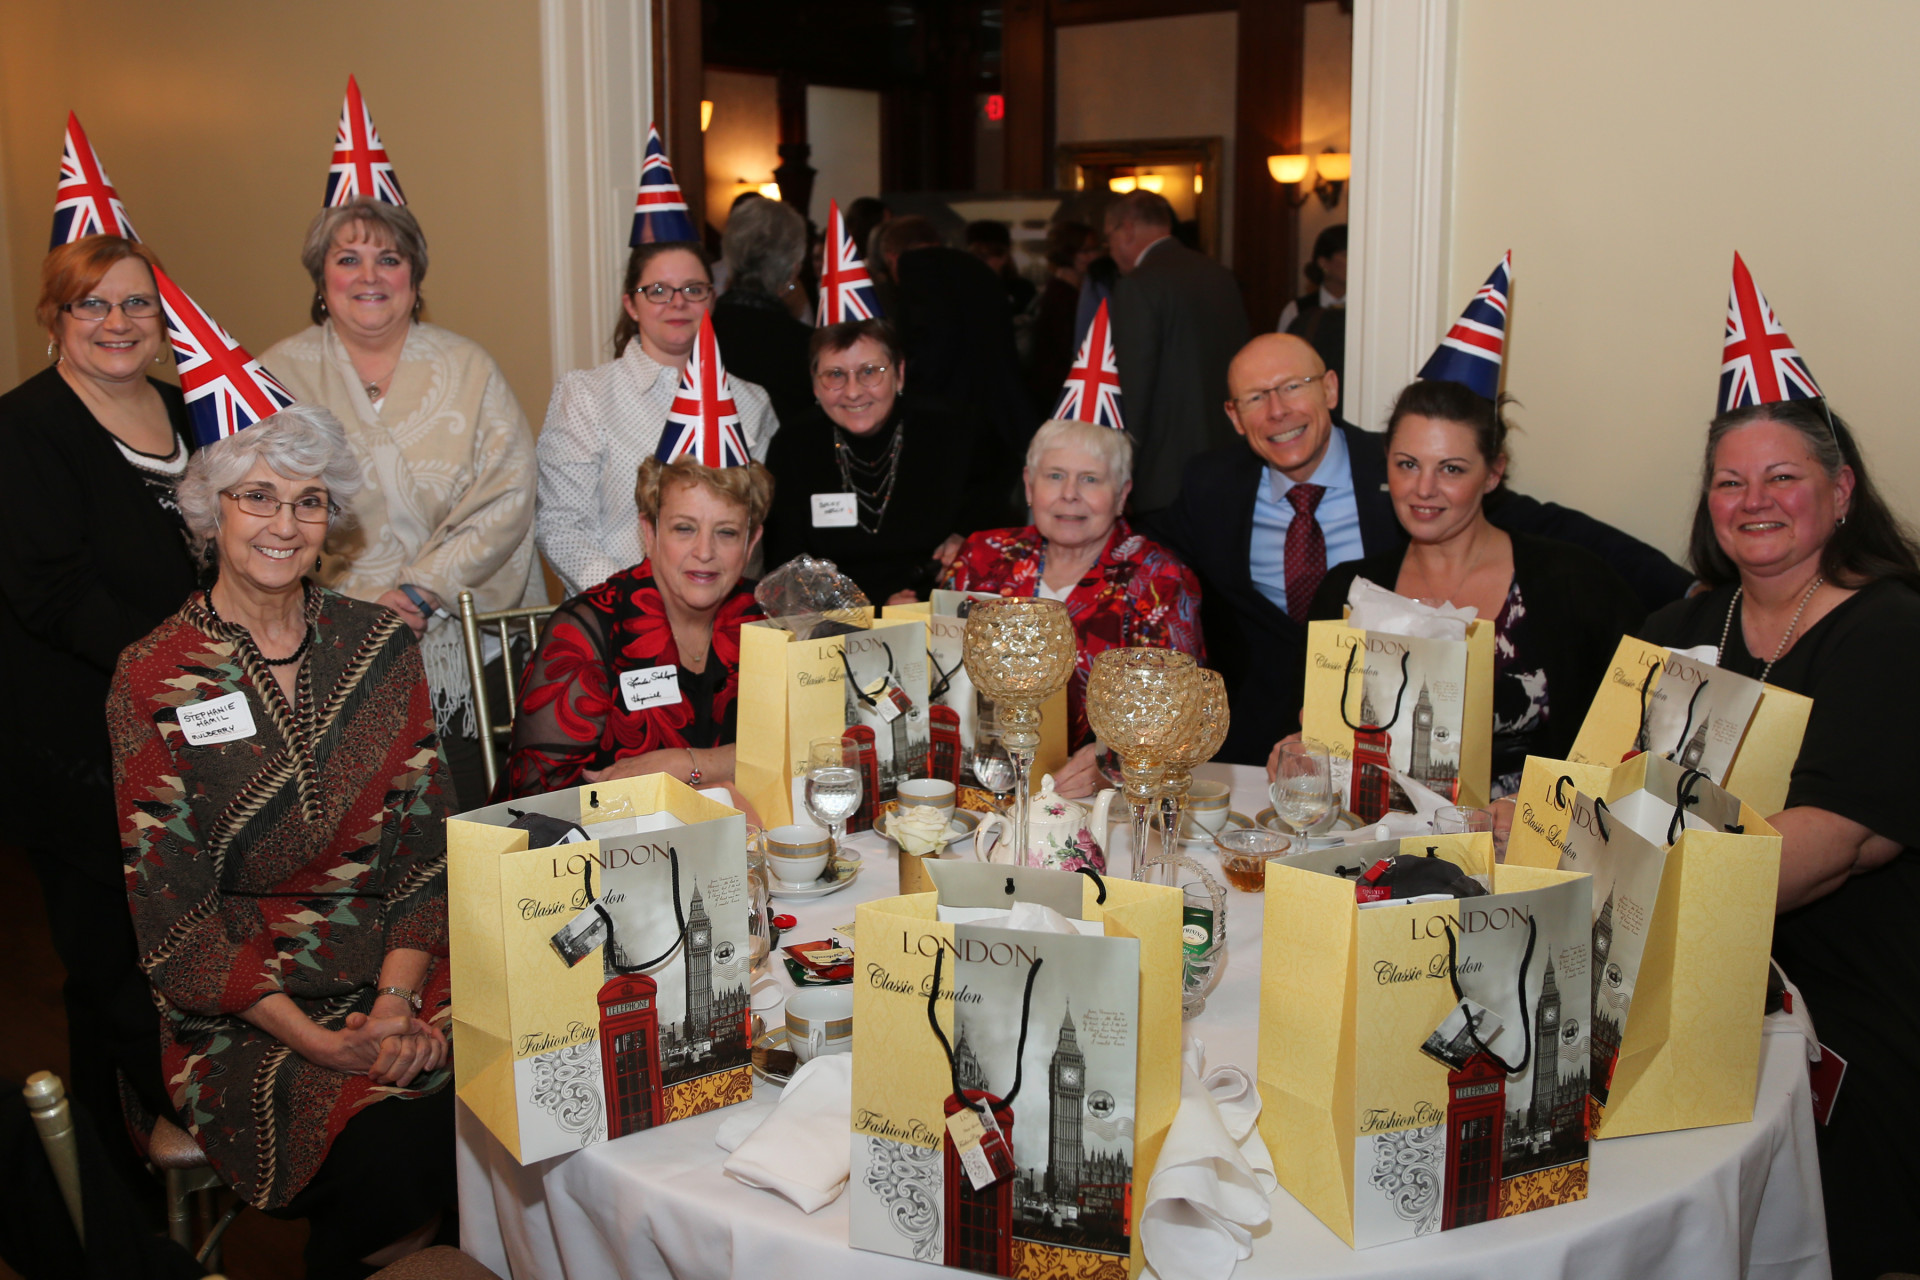 Annual British Tea Event